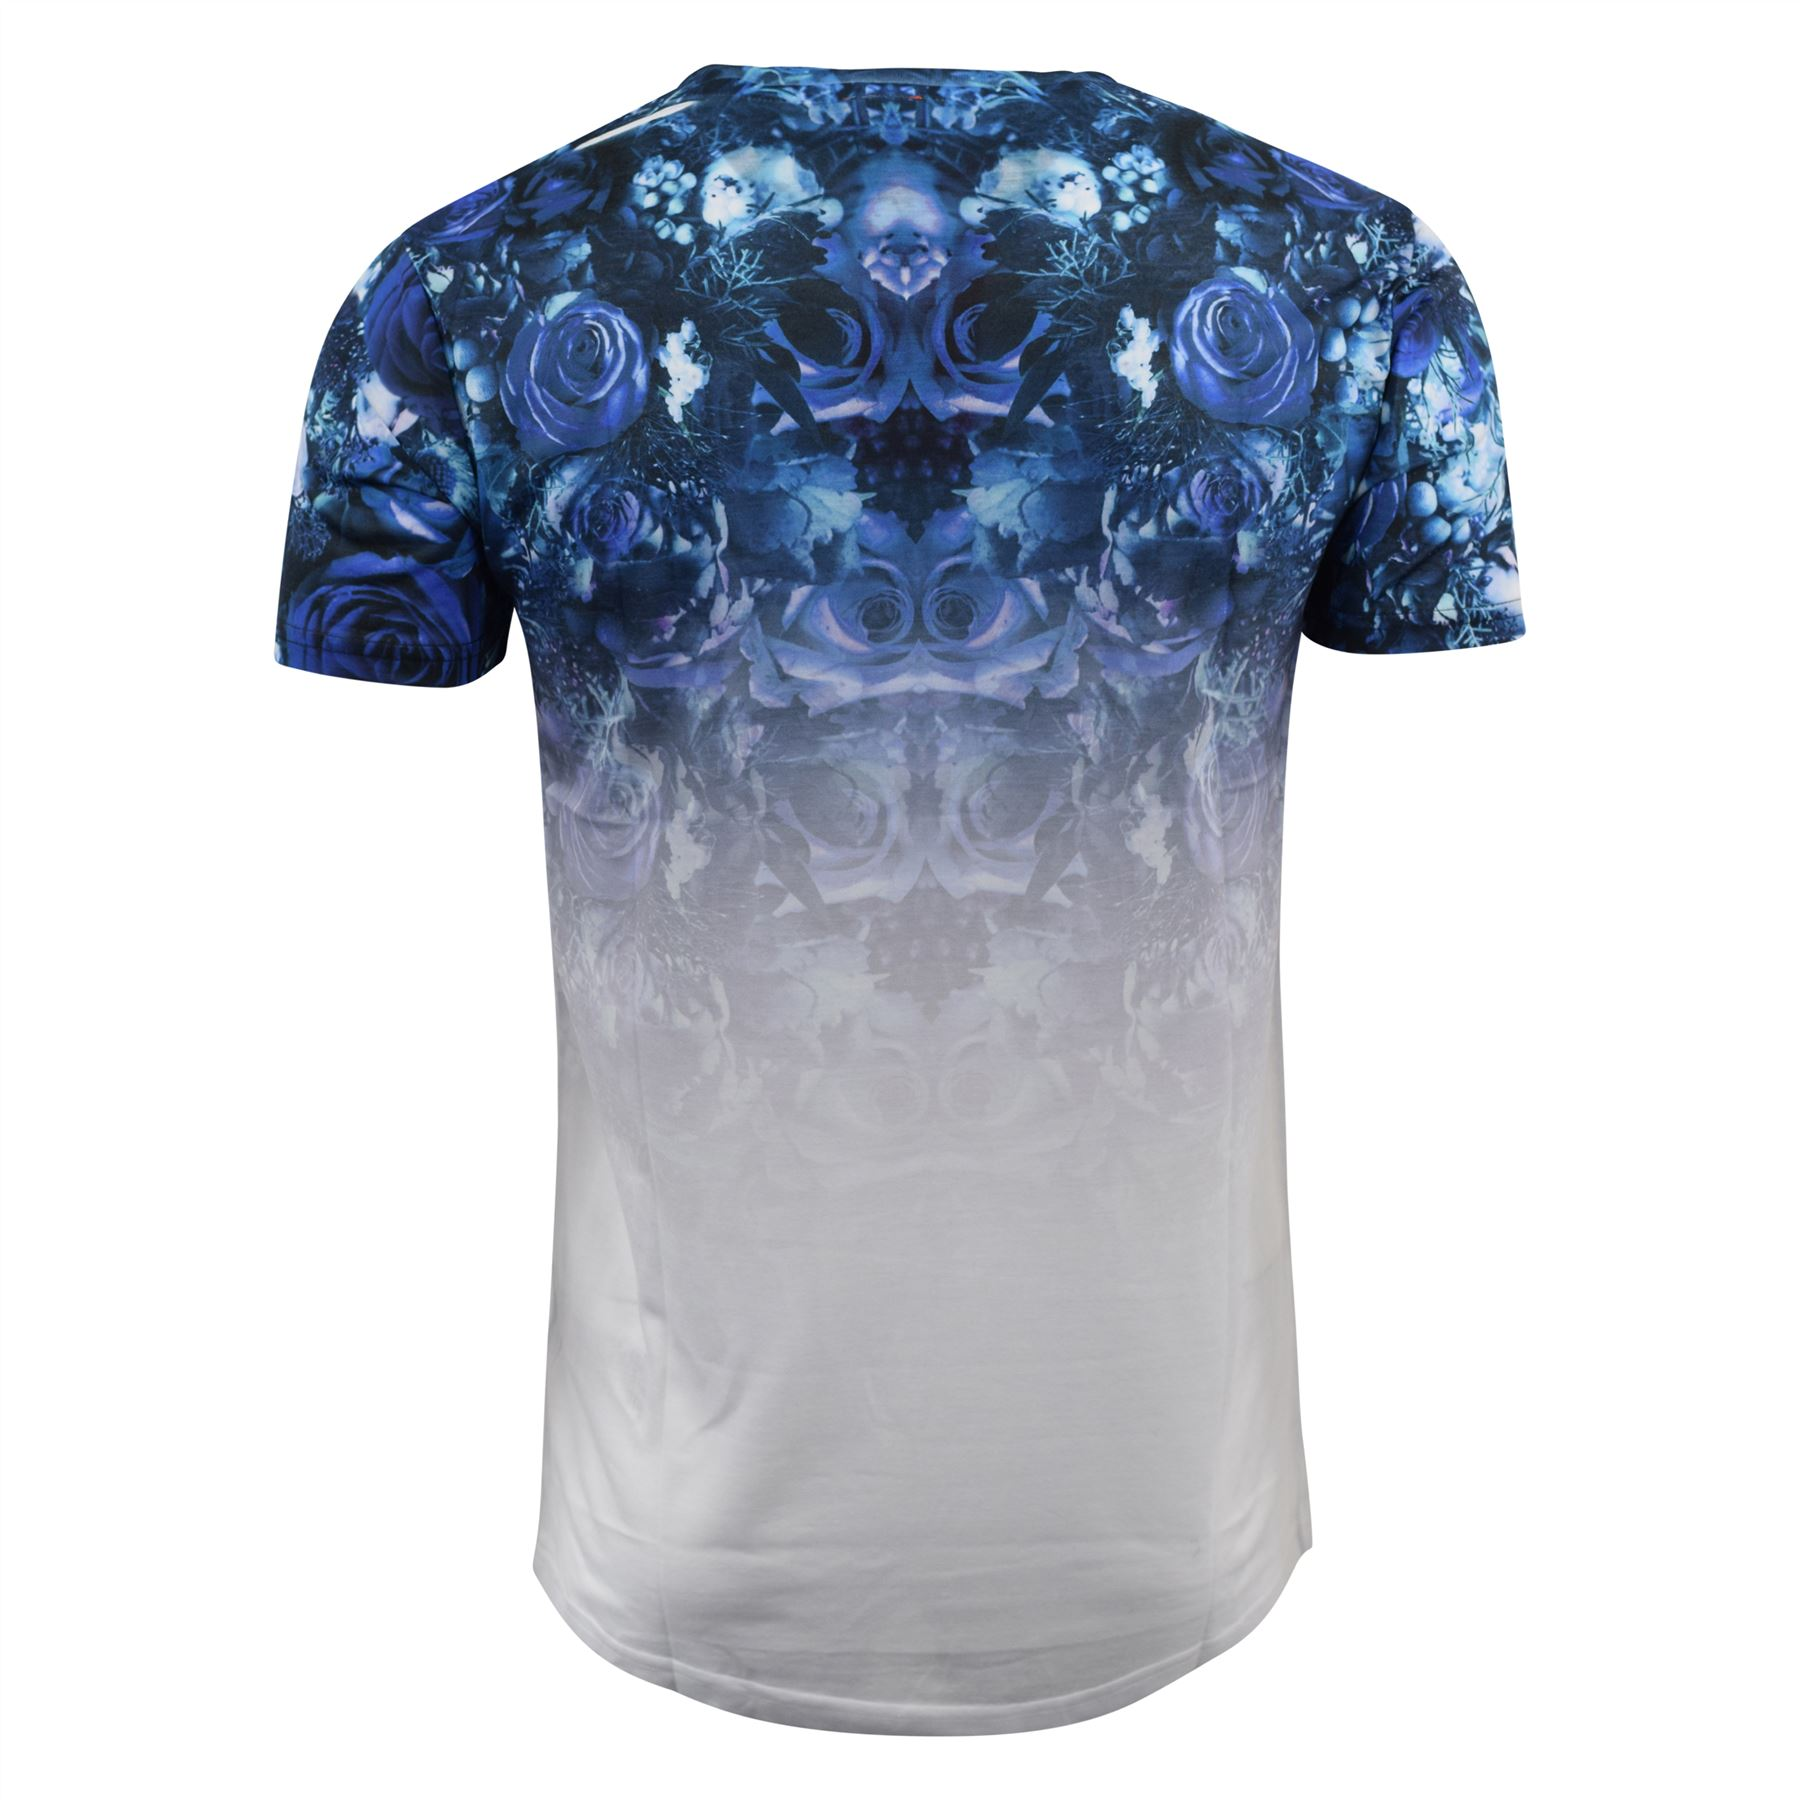 Mens-T-Shirt-Juice-Floral-Print-Flower-Crew-Neck-Tee-Top thumbnail 21